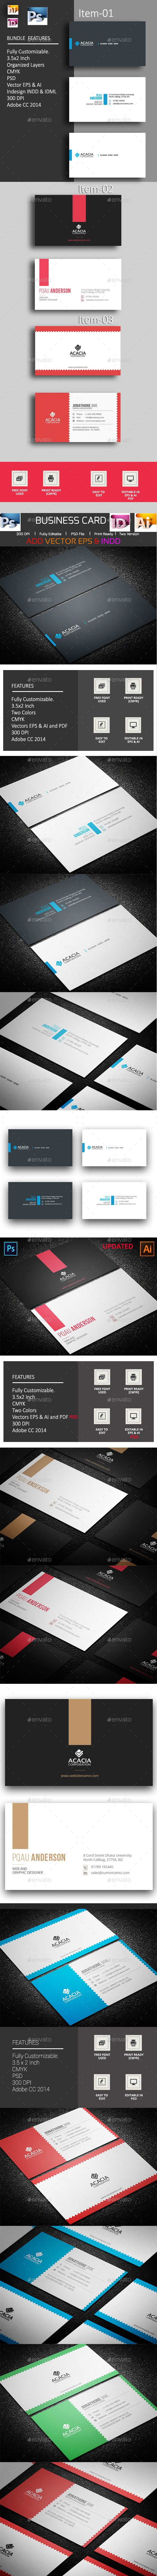 B. Card #Bundle_14 (03 items) - Corporate #Business #Cards Download here: https://graphicriver.net/item/b-card-bundle_14-03-items/20044453?ref=alena994